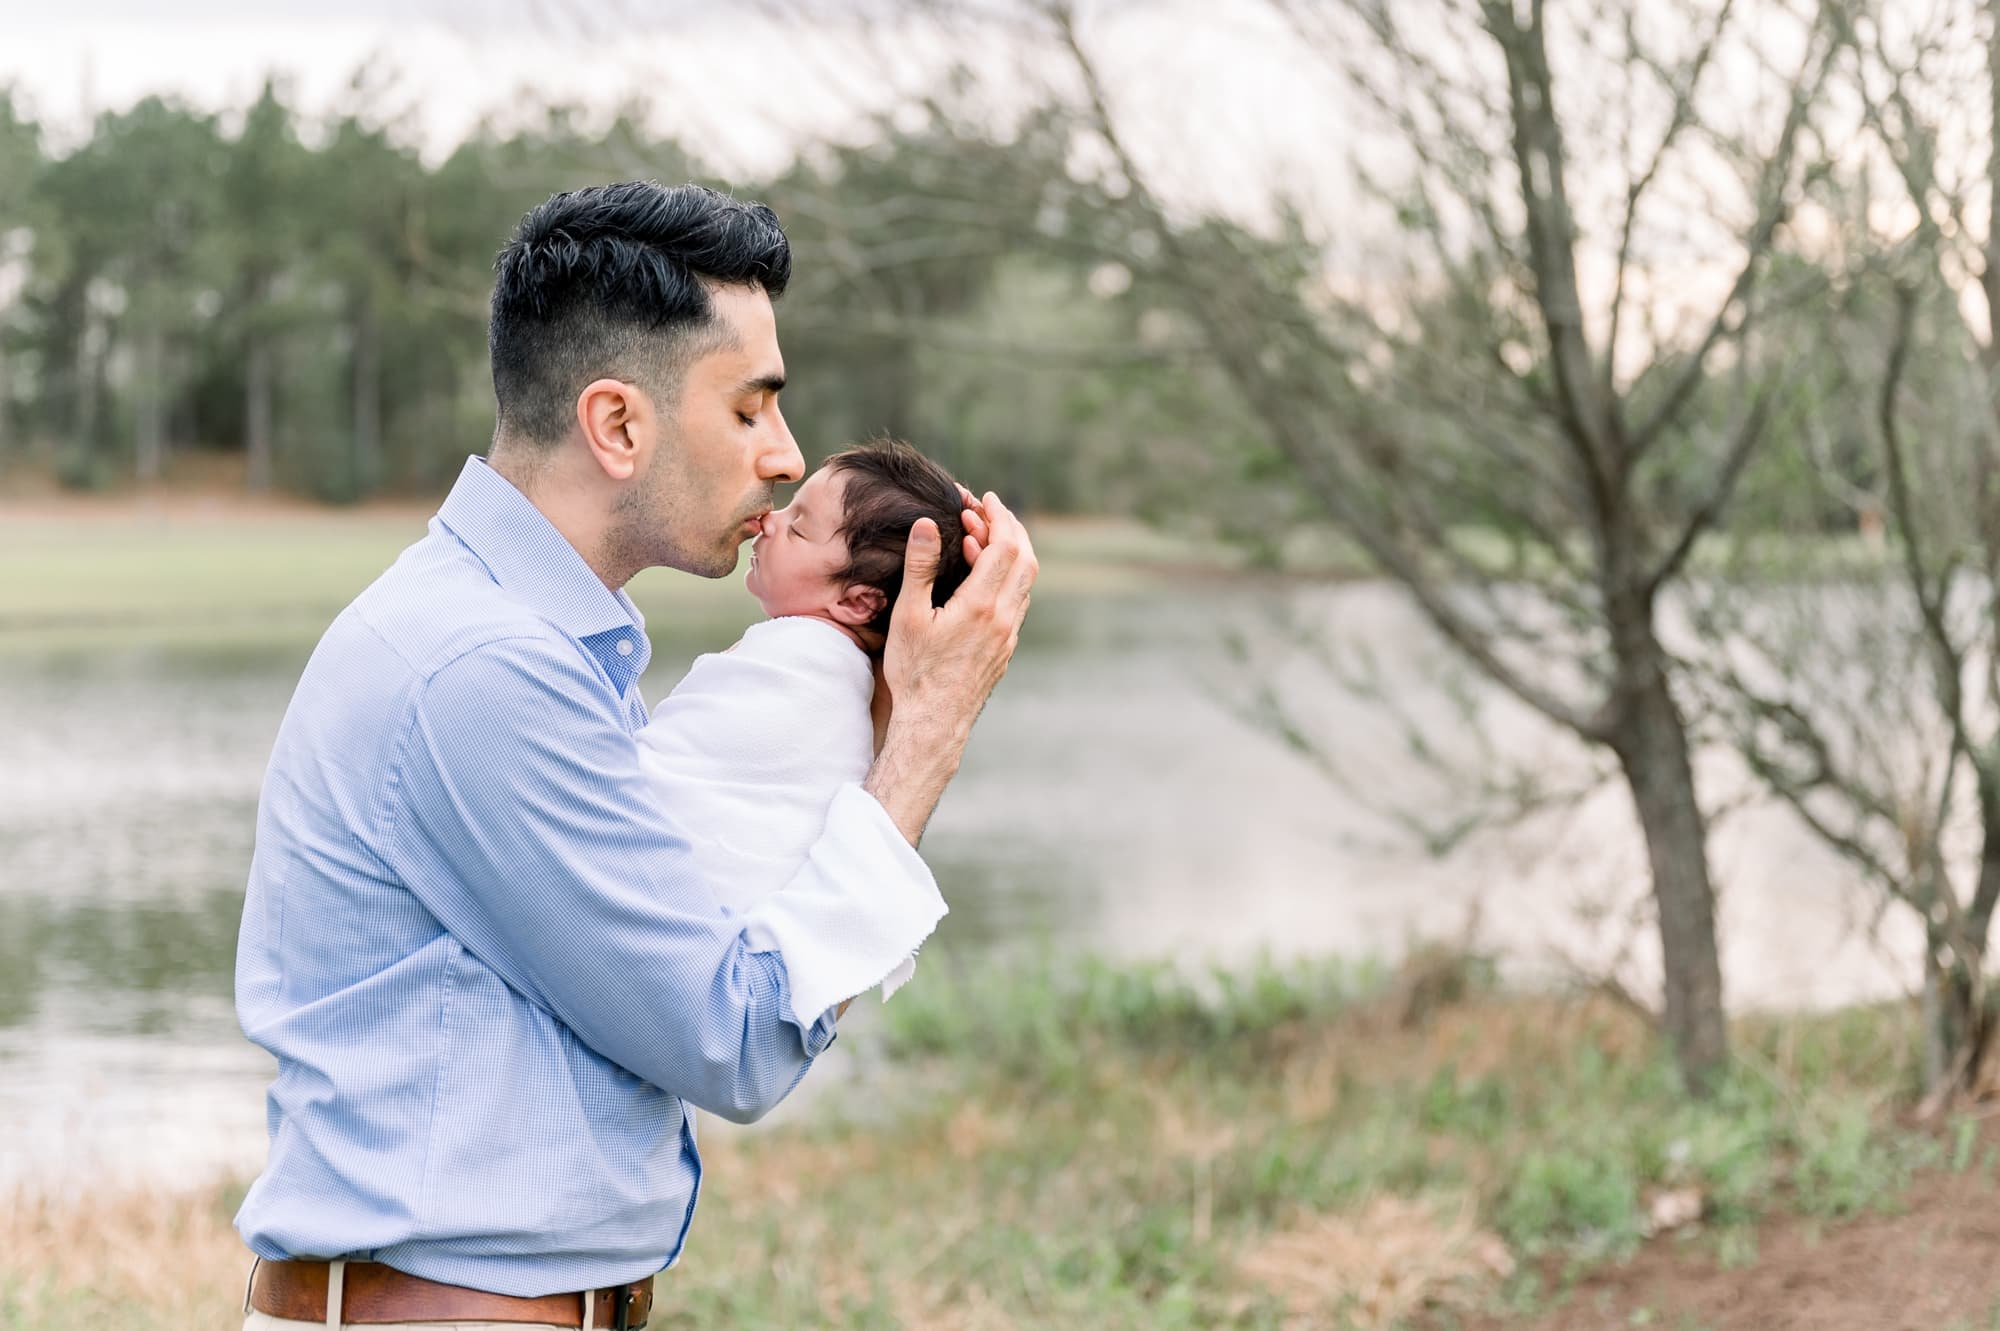 Dad kissing baby's nose during outdoor newborn session. Photo by Frisco newborn photographer, Aimee Hamilton Photography.